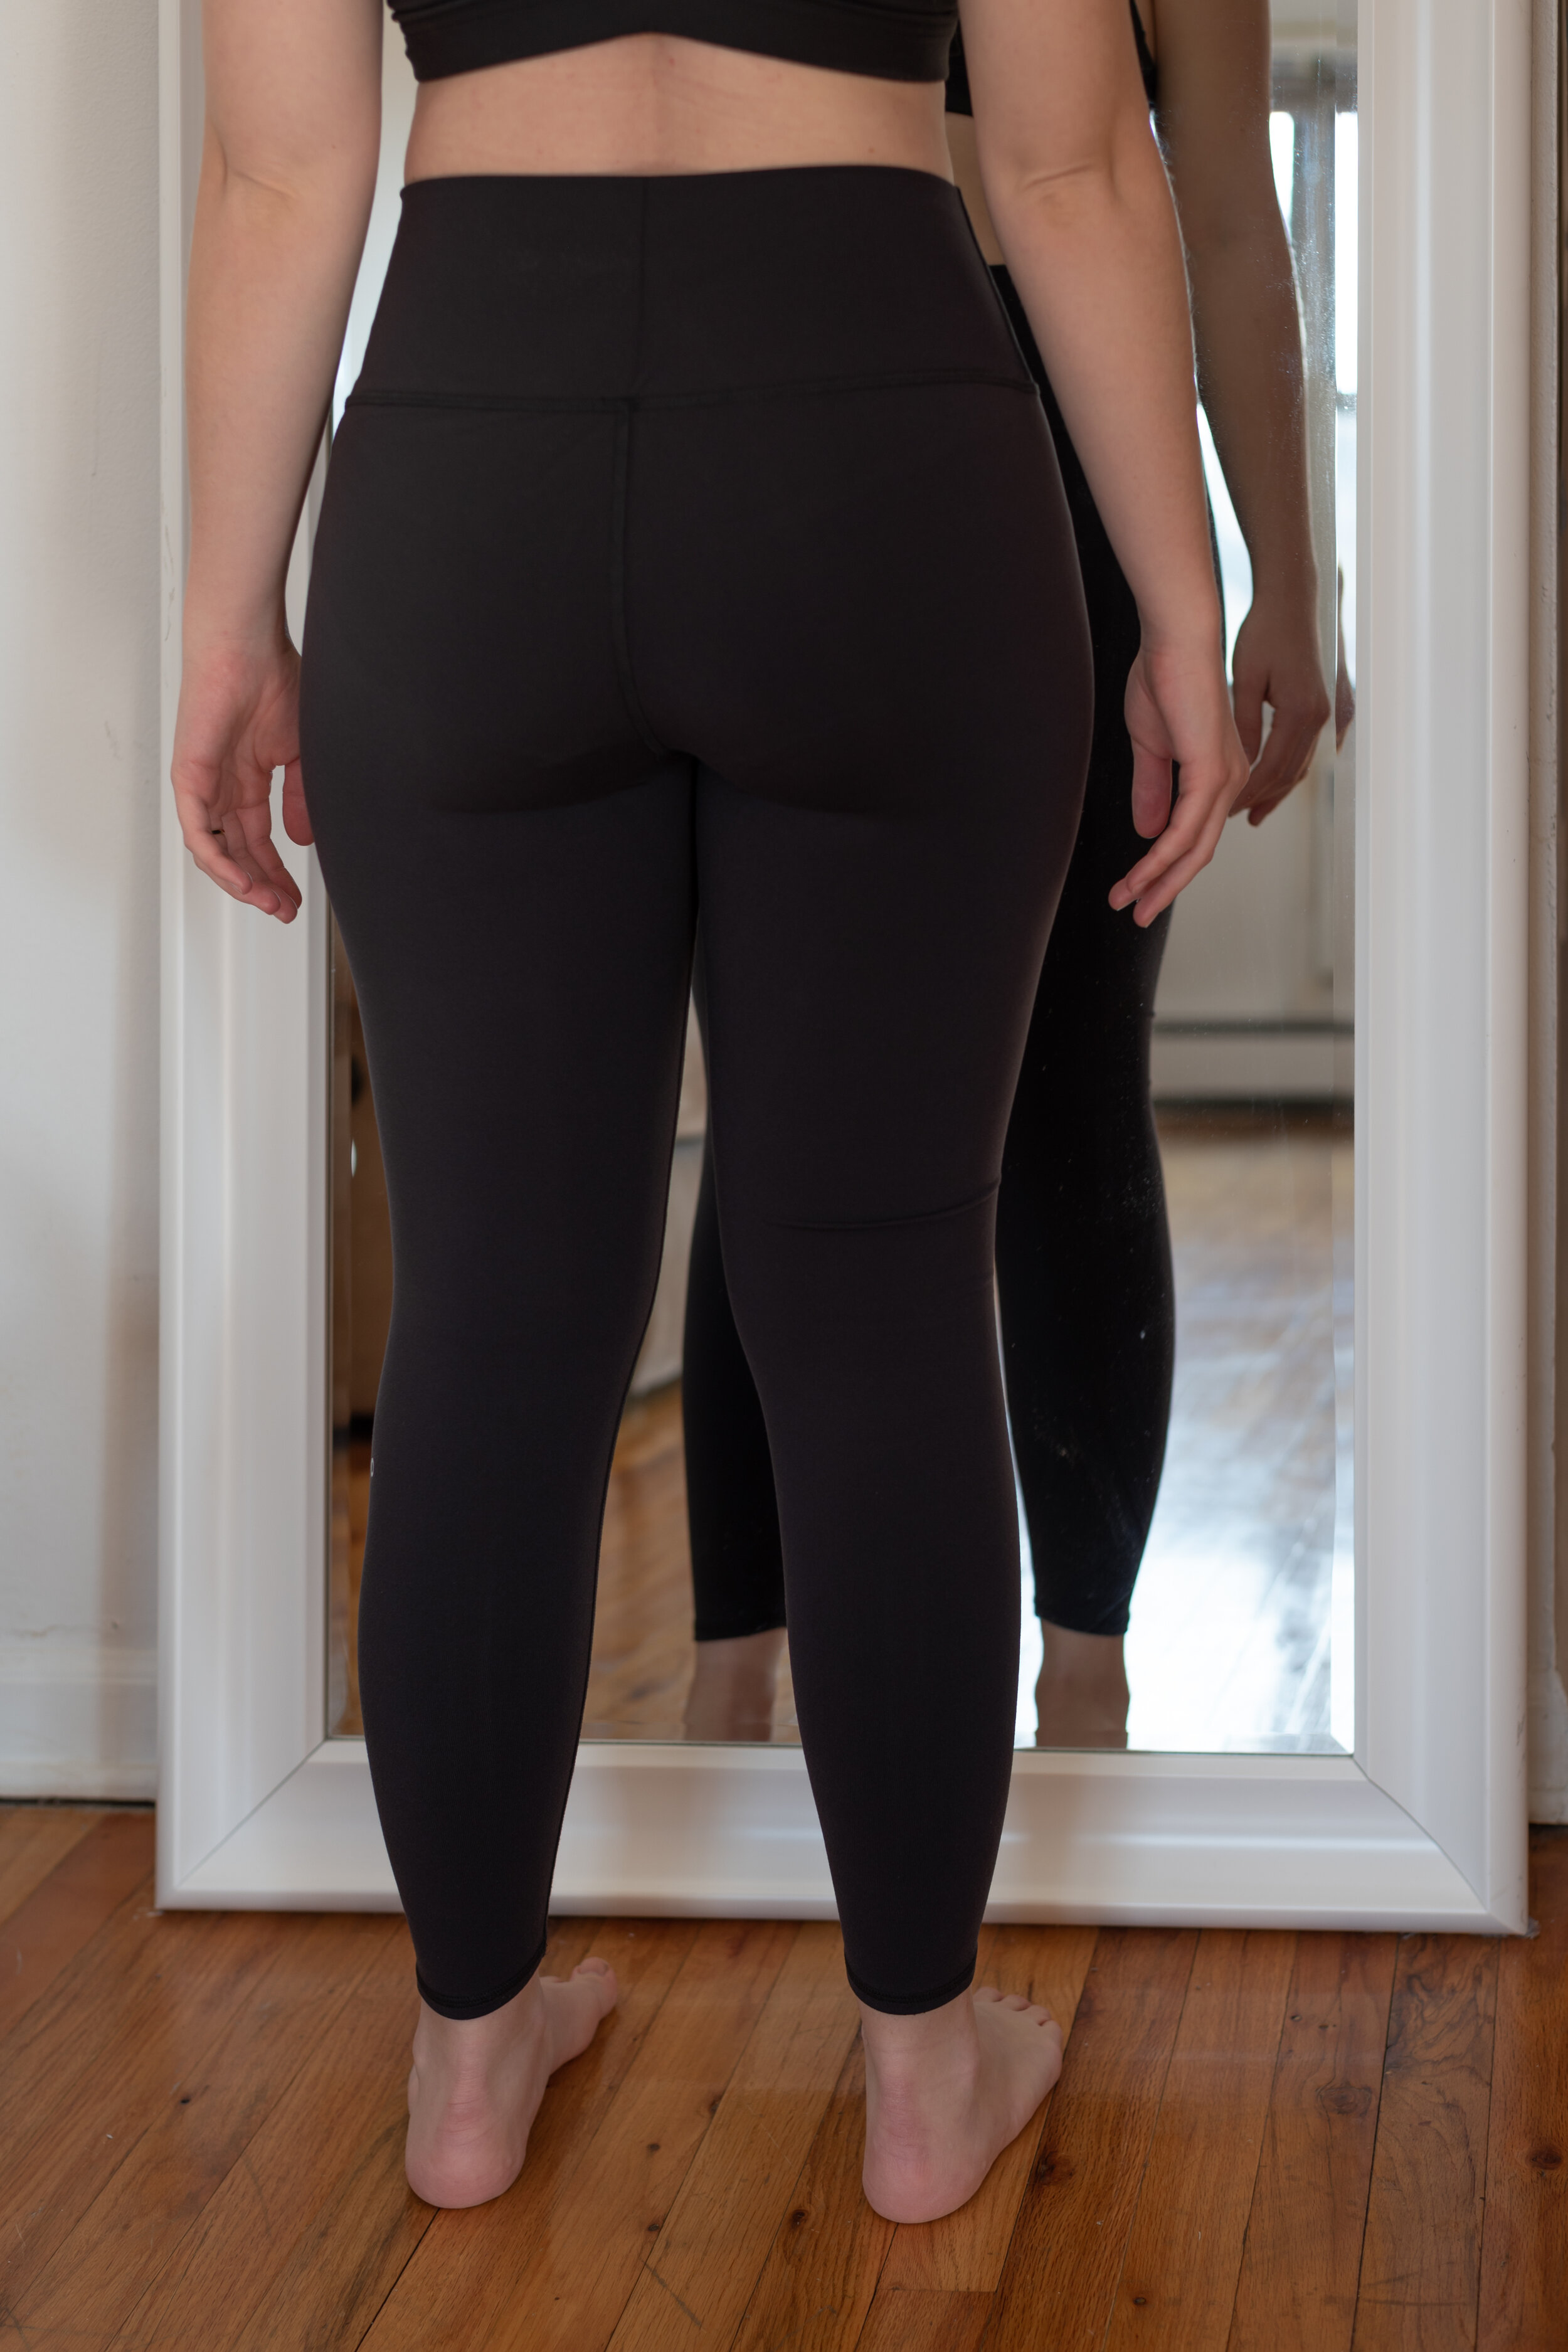 The Best And Worst Workout Leggings For Petite Pears The Petite Pear Project